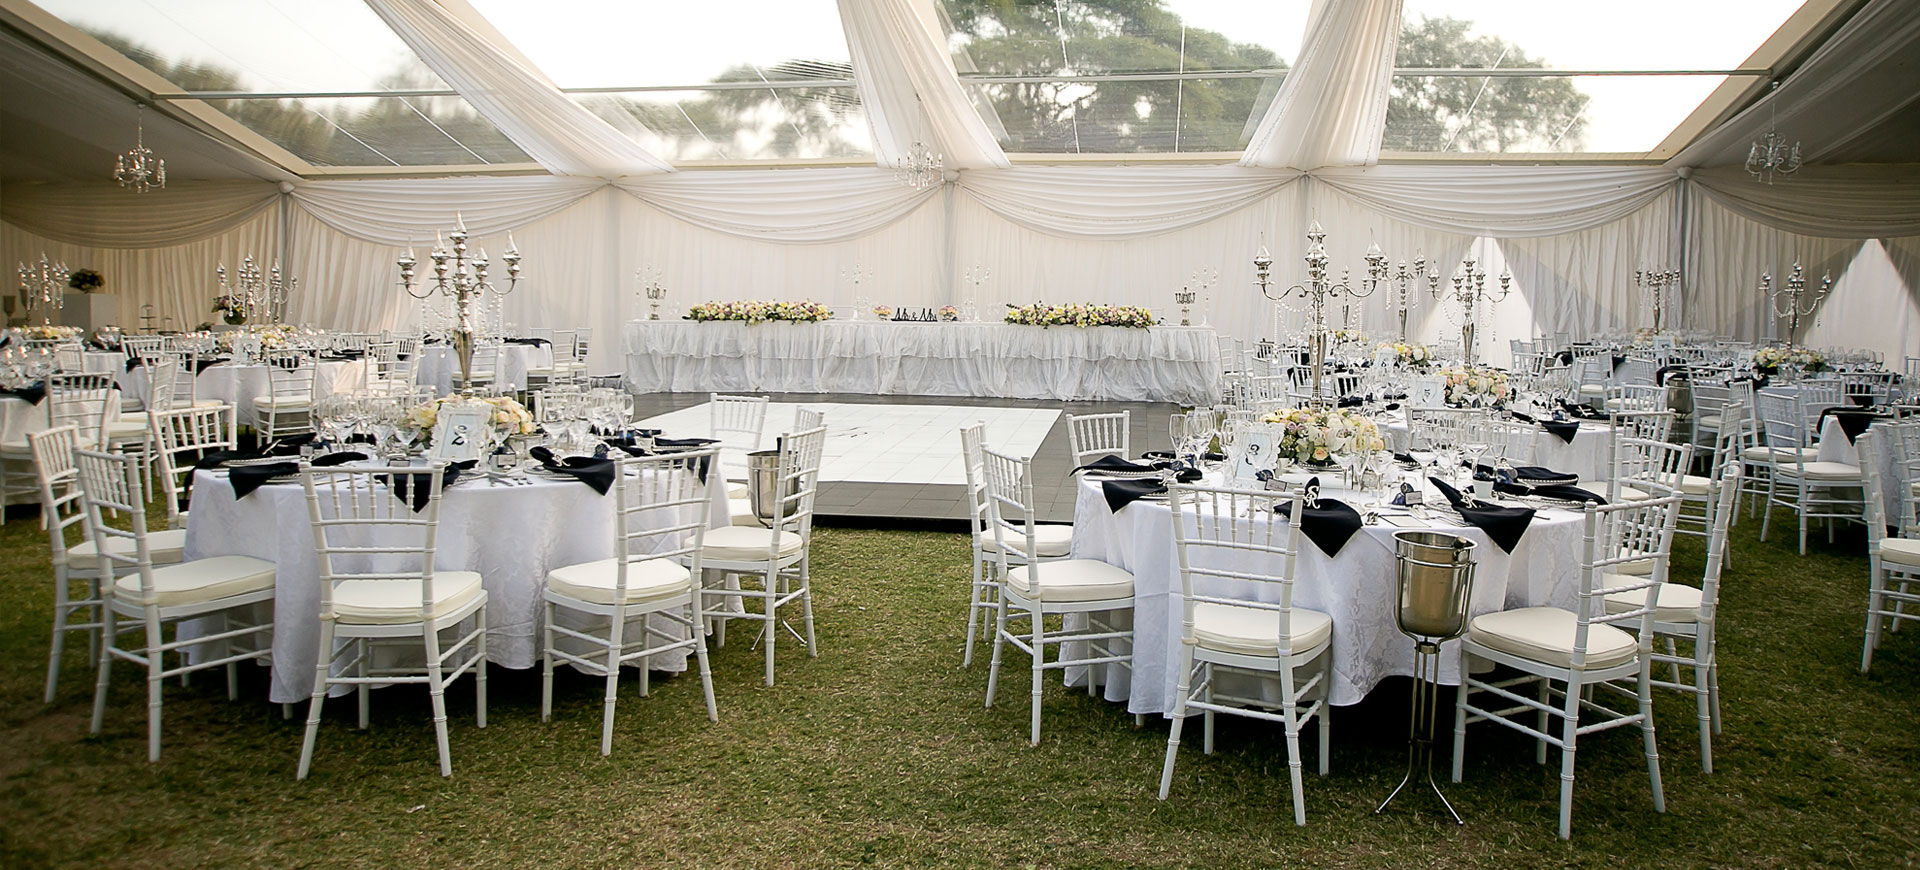 Event Planners In Victoria Falls